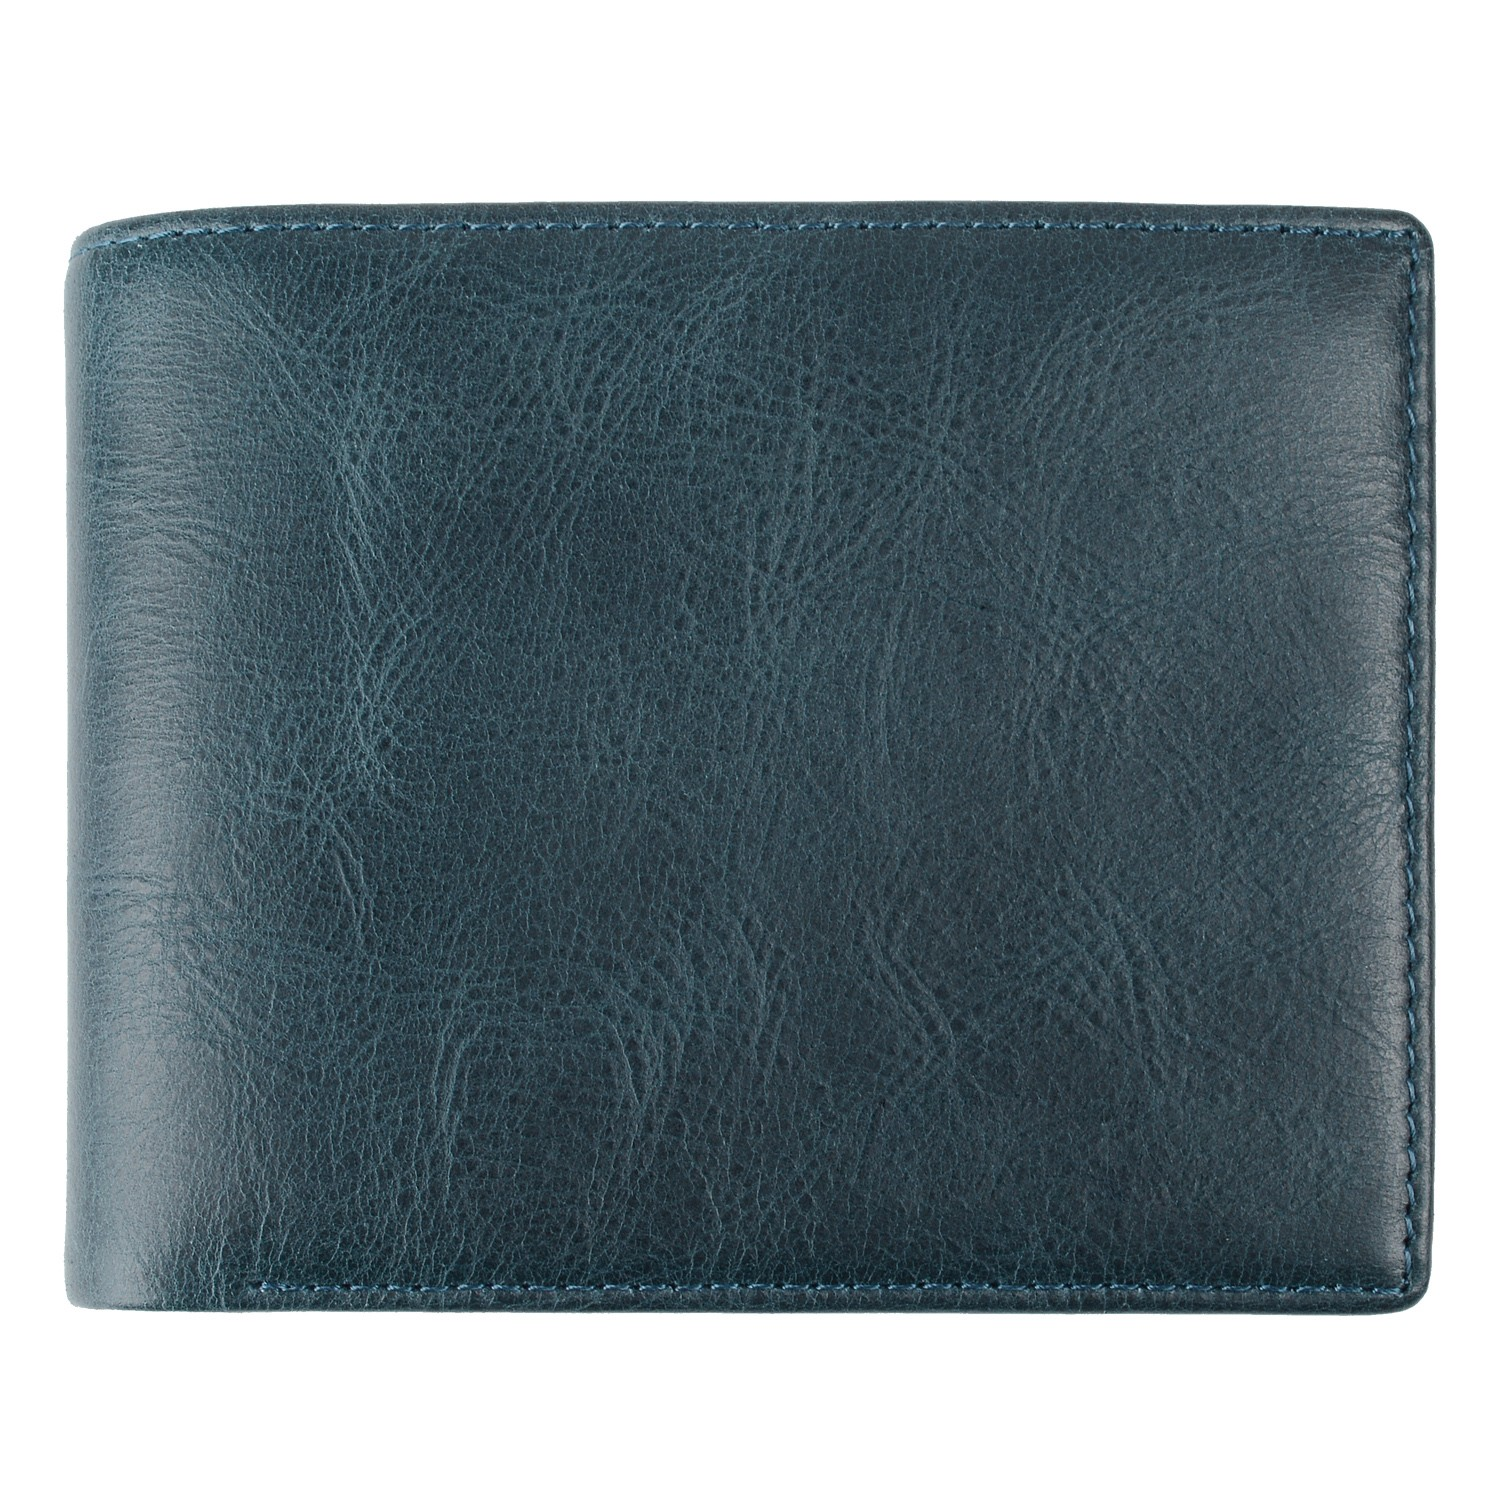 leather travel wallet large capacity for men-3